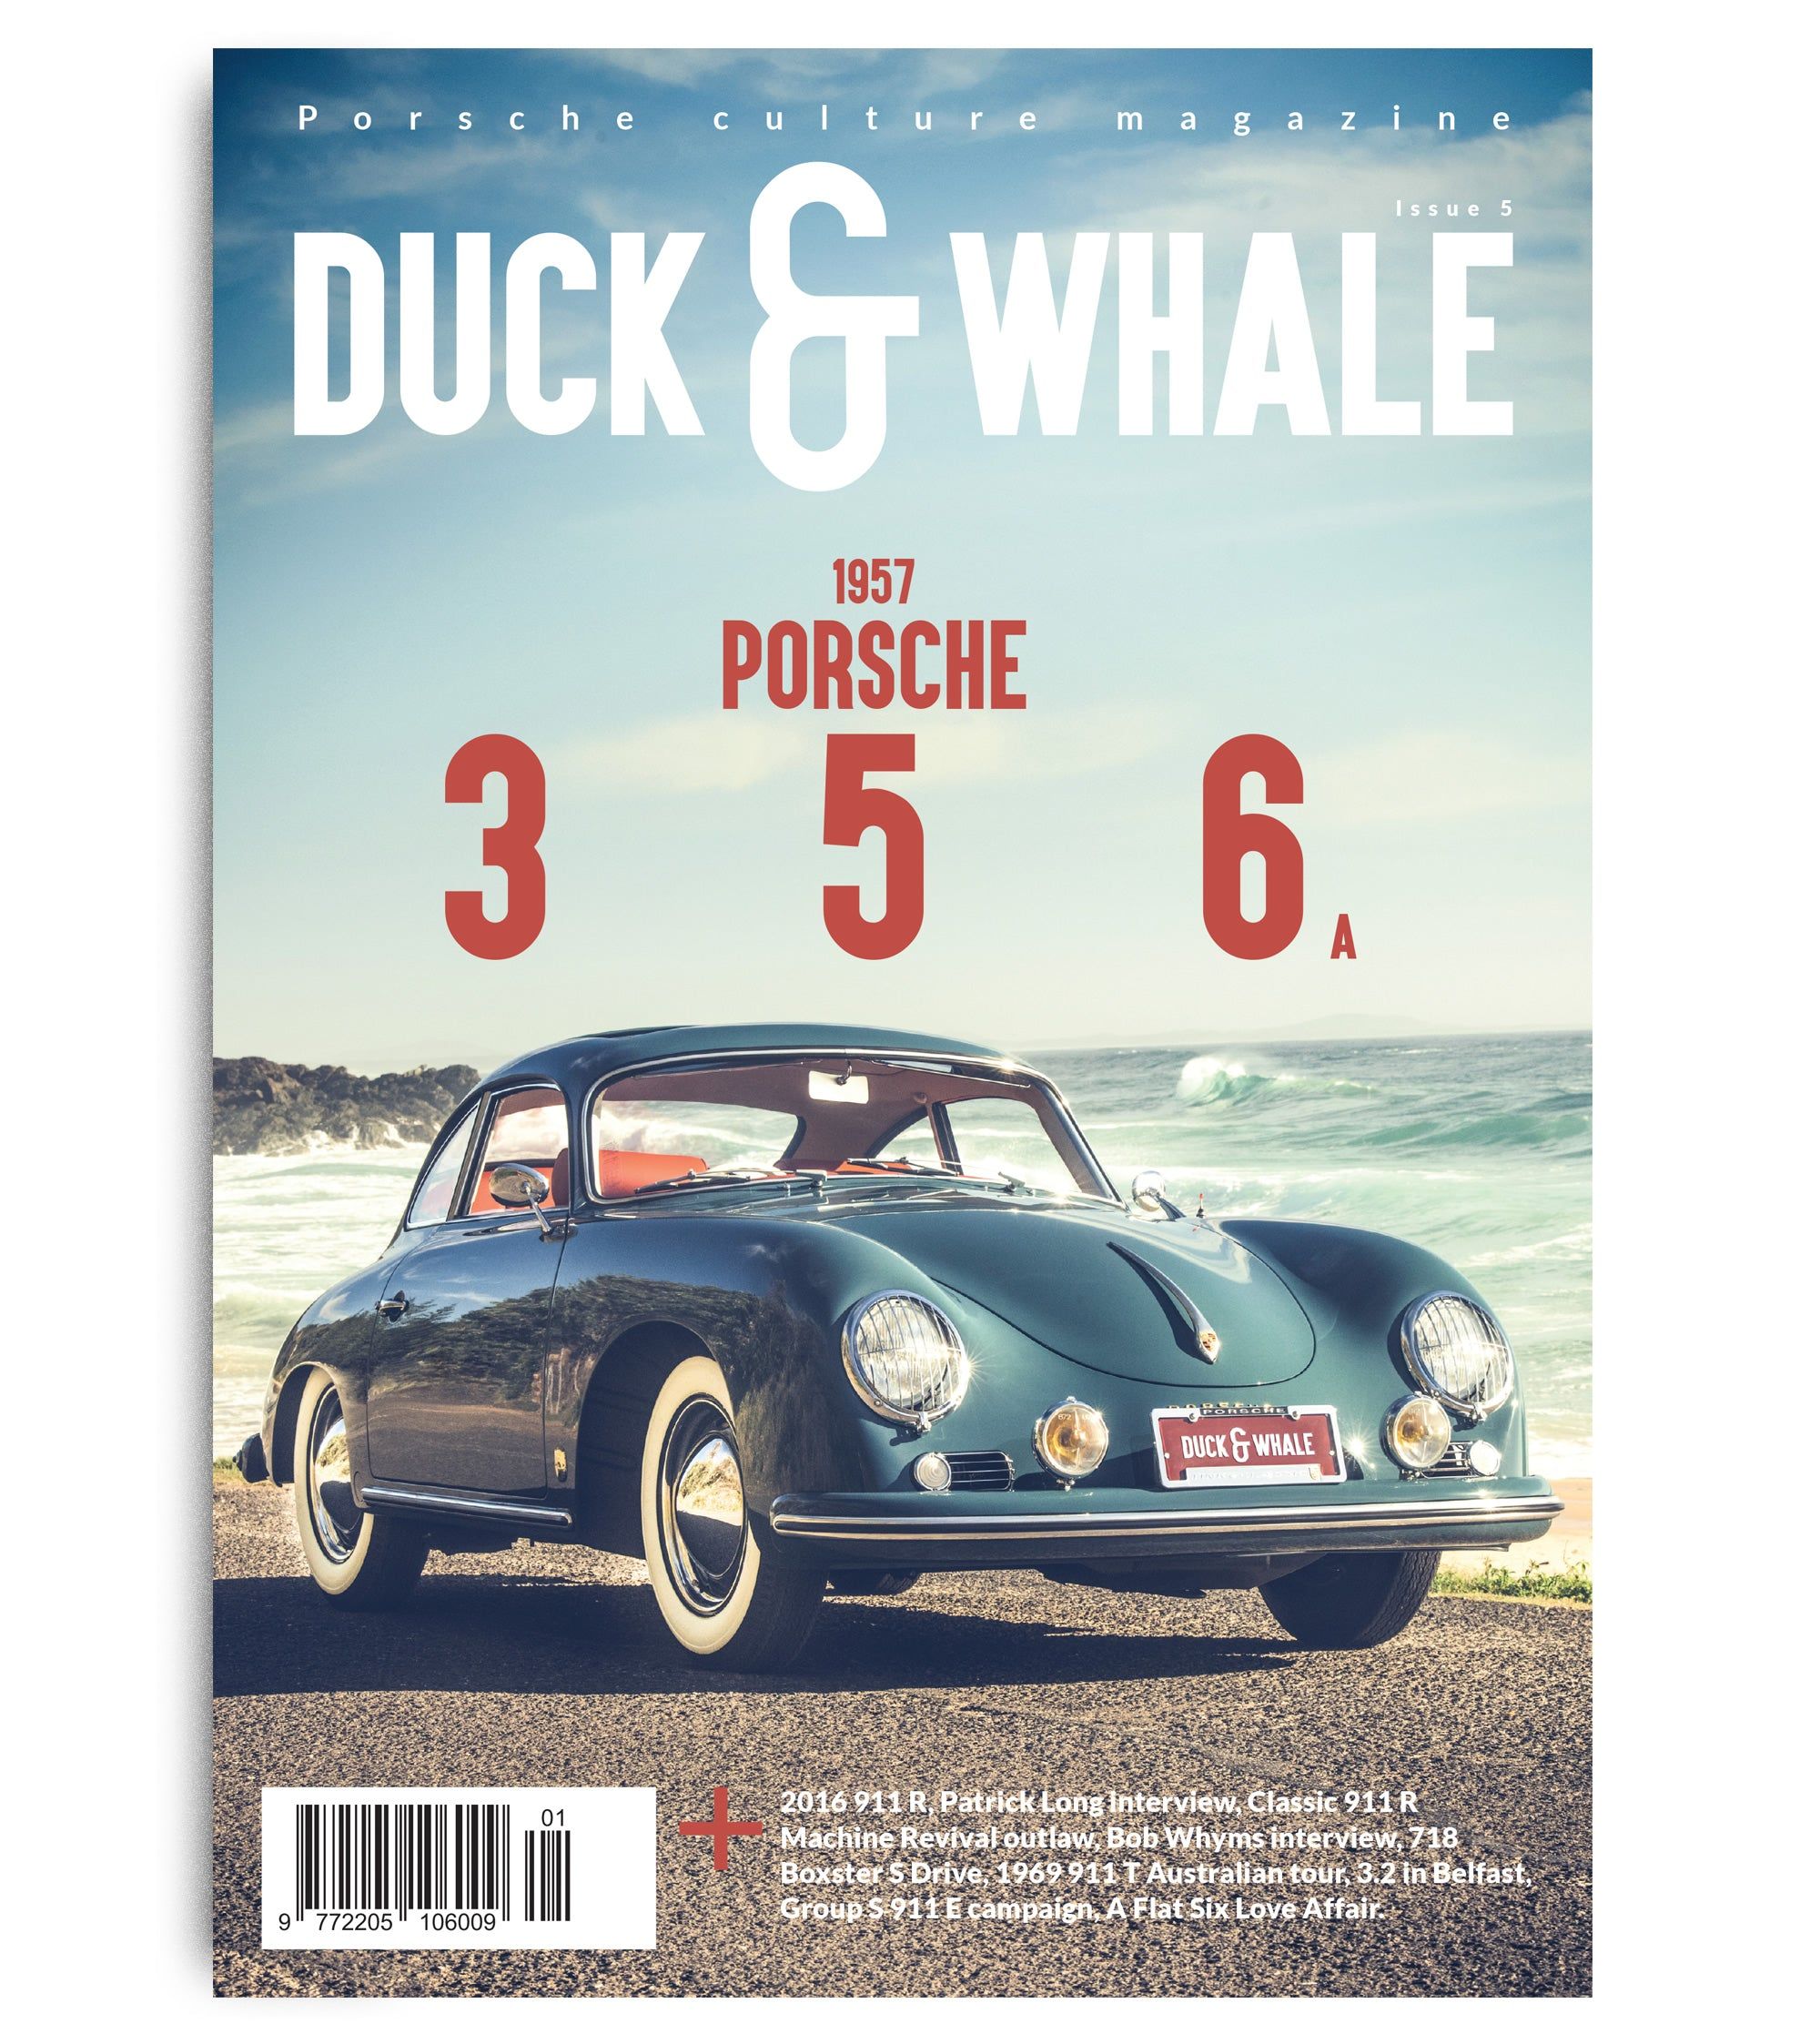 Duck & Whale Issue 5